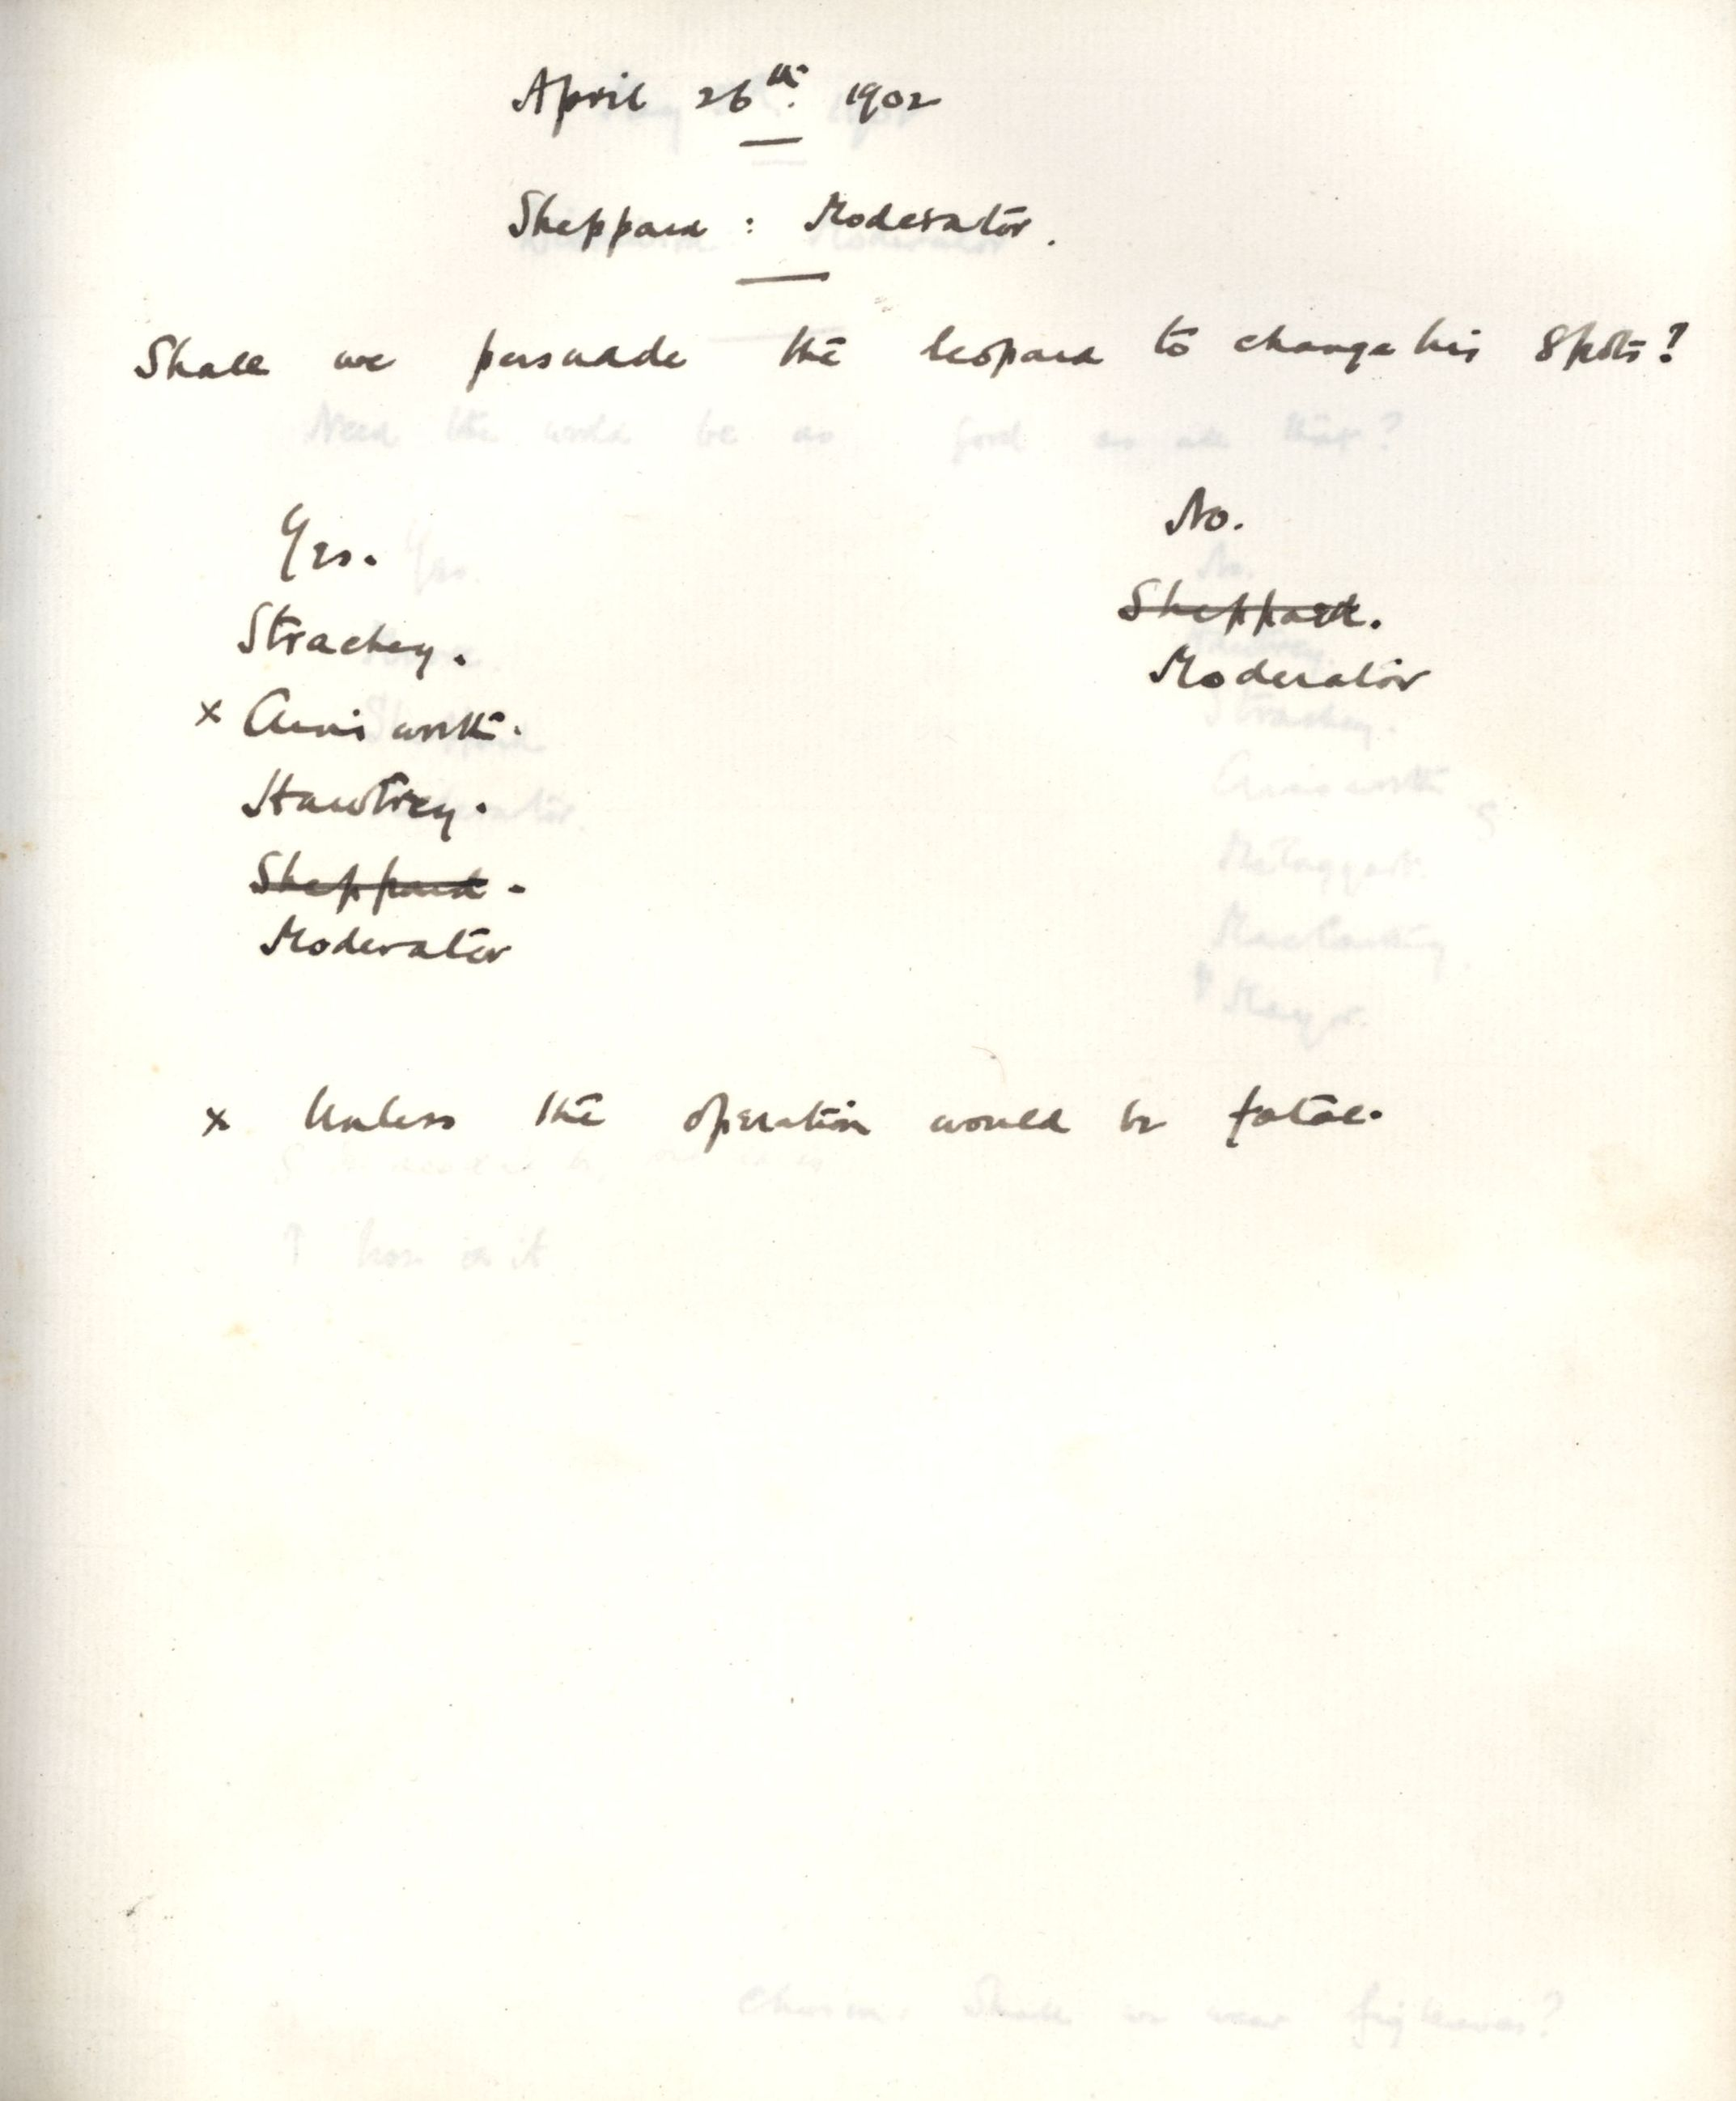 Minutes of a meeting in which Sheppard asked 'Shall we ask the leopard to change his spots?' [KCAS/39/1/13, 26 April 1902]